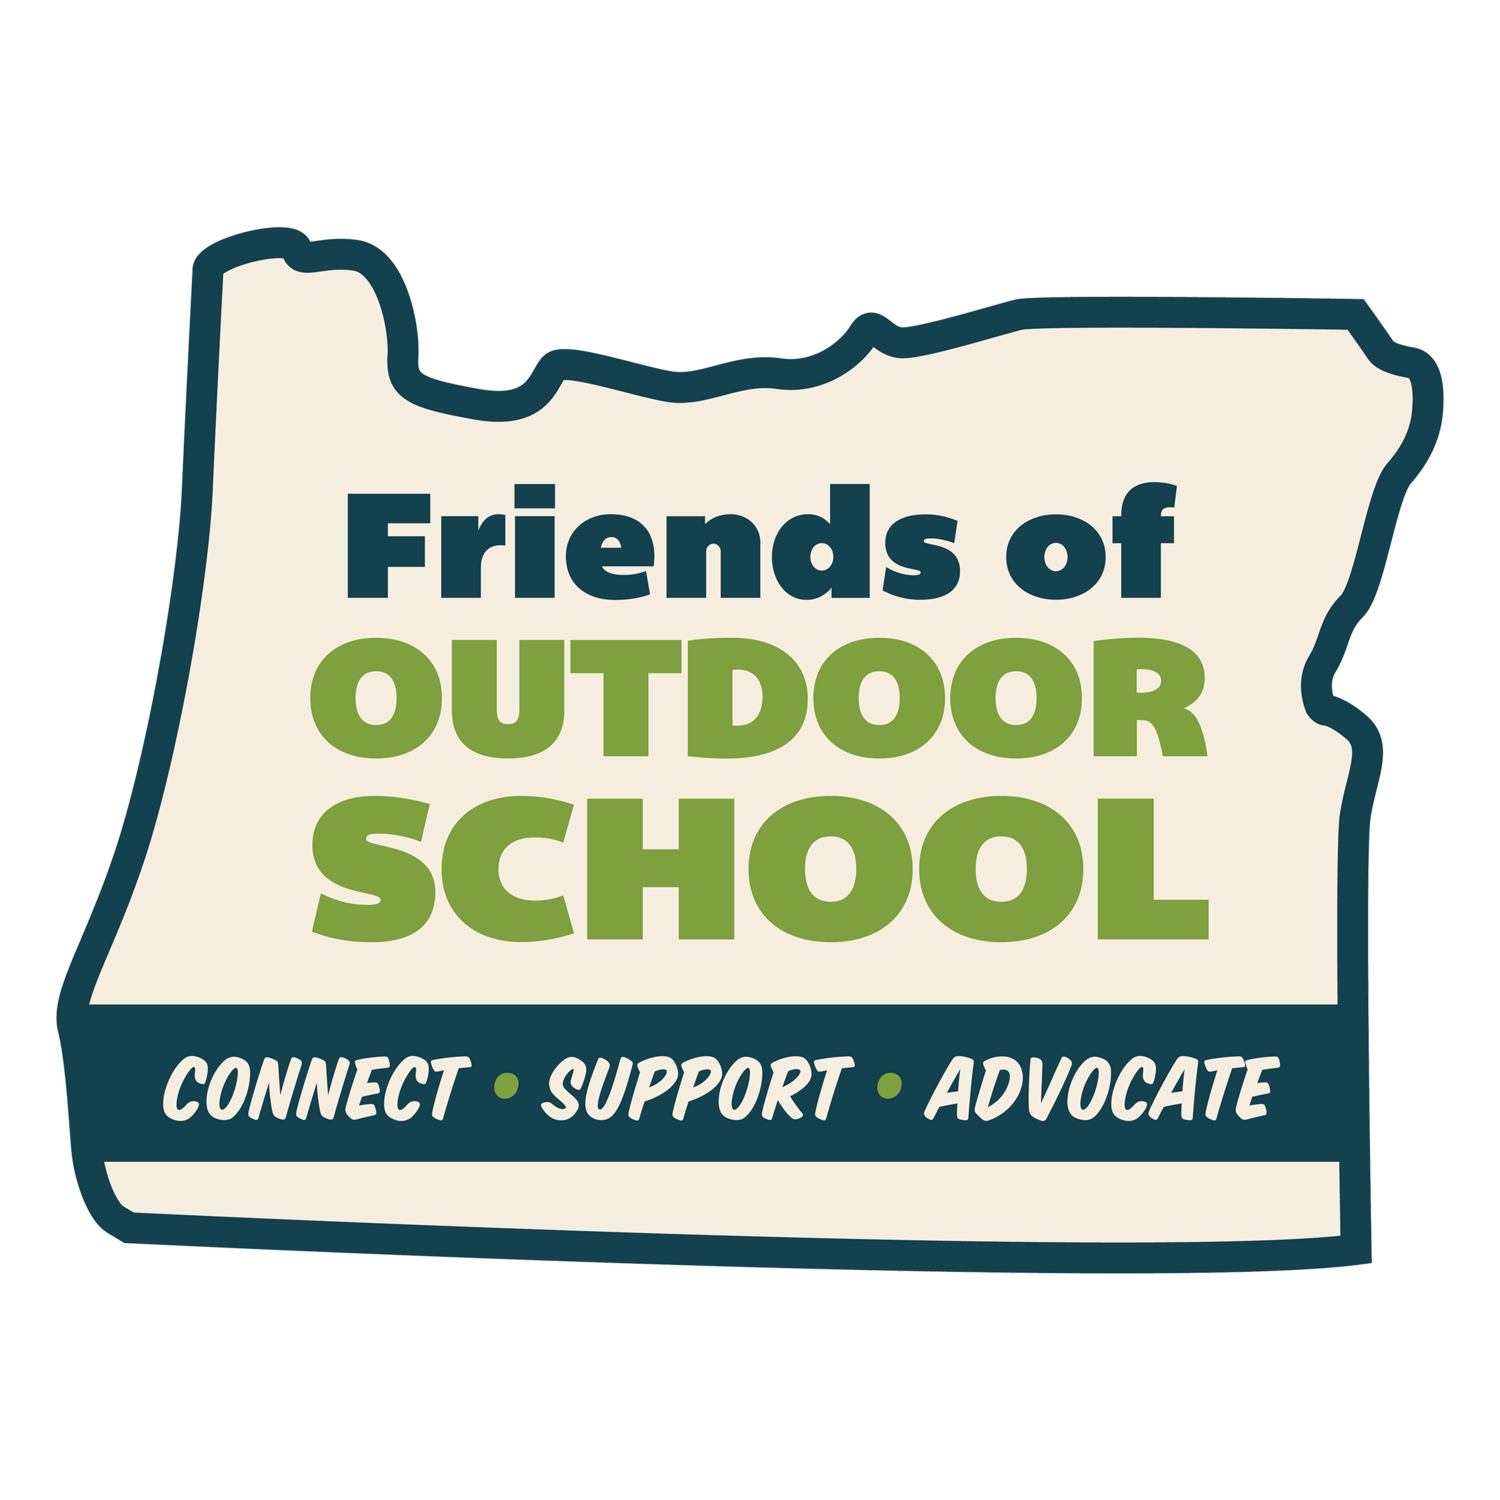 Friends of Outdoor School